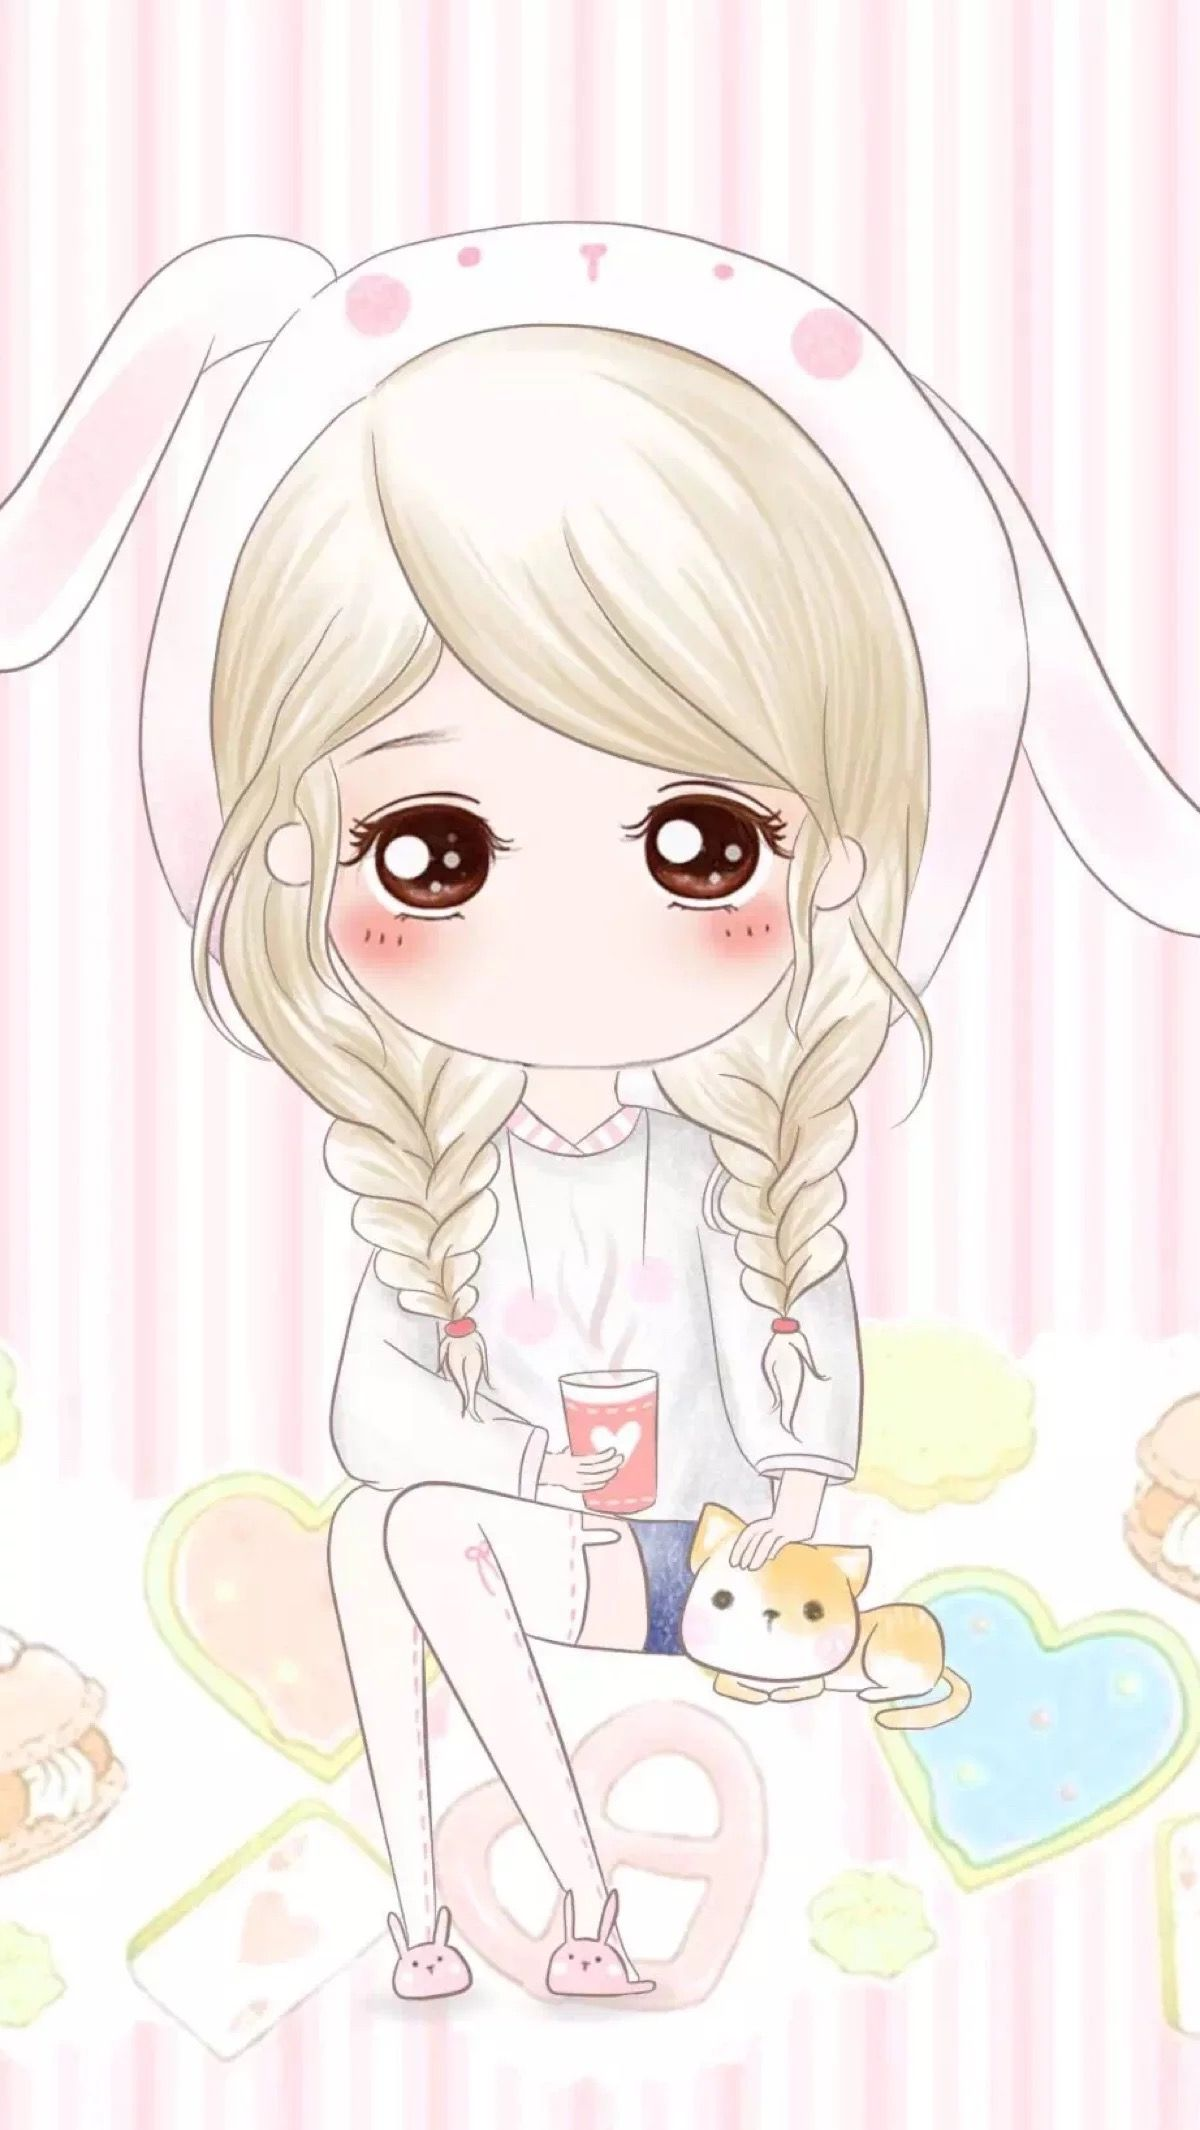 Pin by Pankeawป่านแก้ว on Cute Cartoon Pinterest Chibi